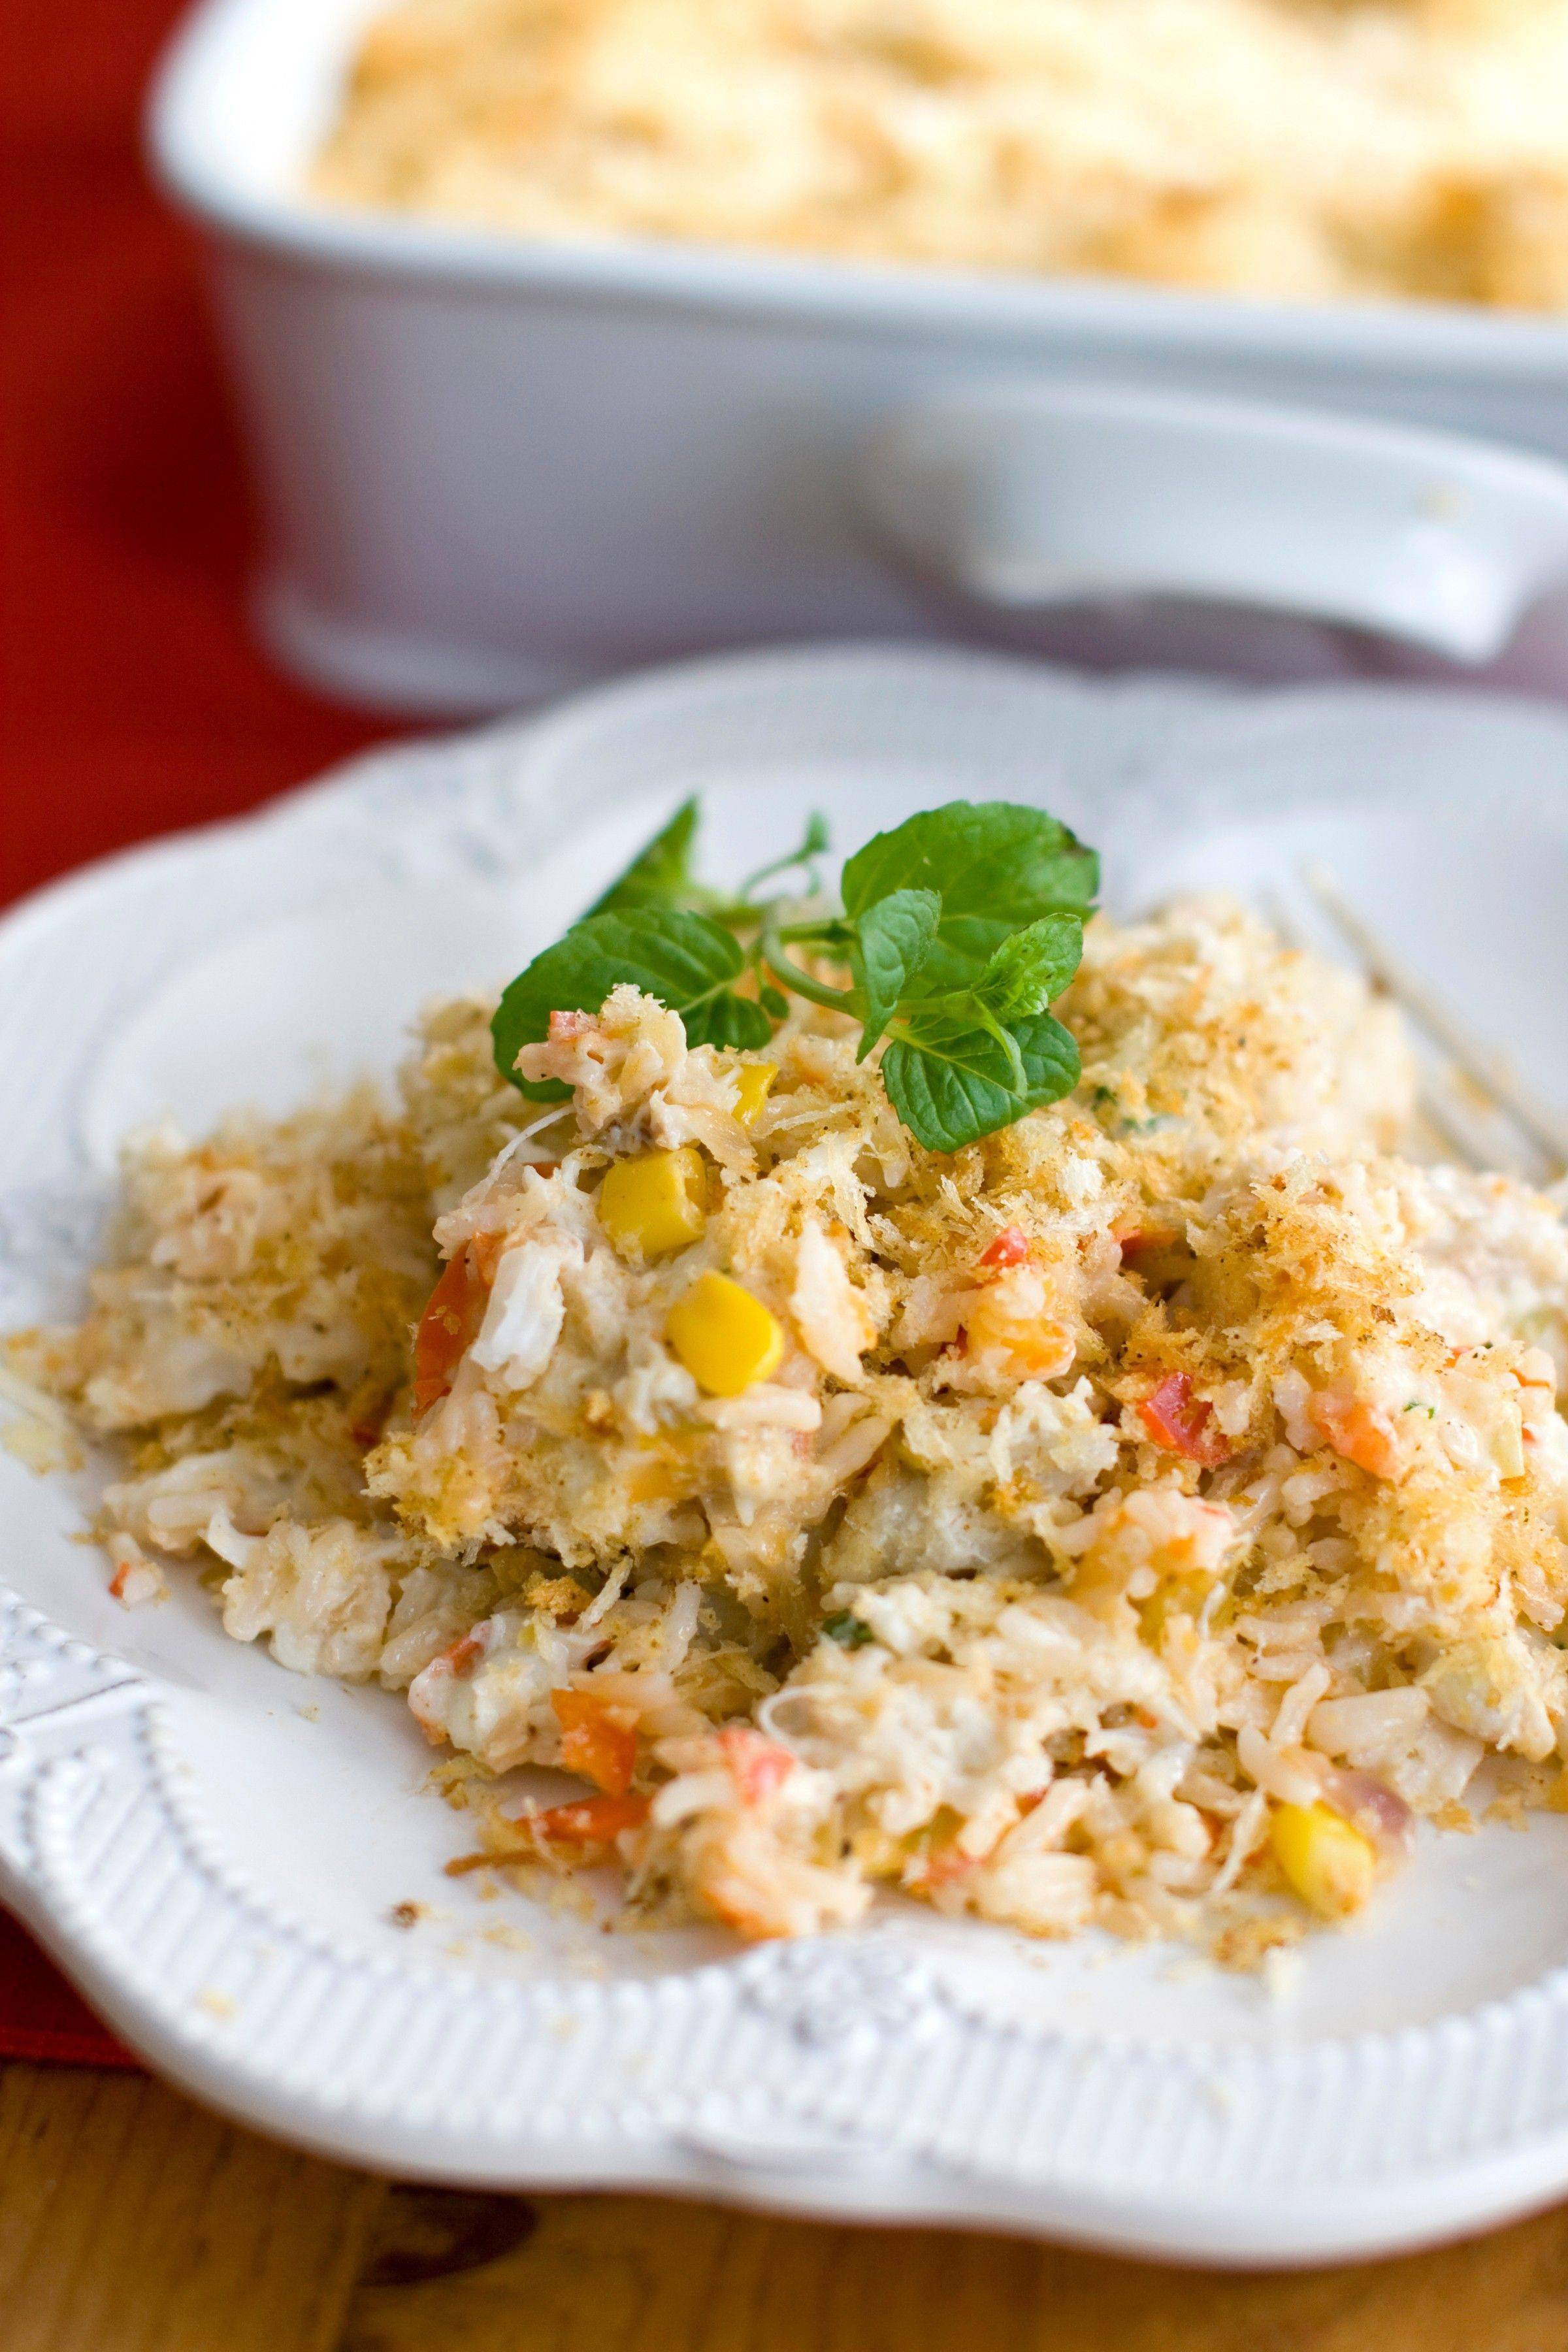 This dish takes the flavor of a creamy crab dip and turns it into a meal. It serves 16 as a hearty dinner, but can feed many more at a potluck, where diners tend to take smaller portions of each dish.